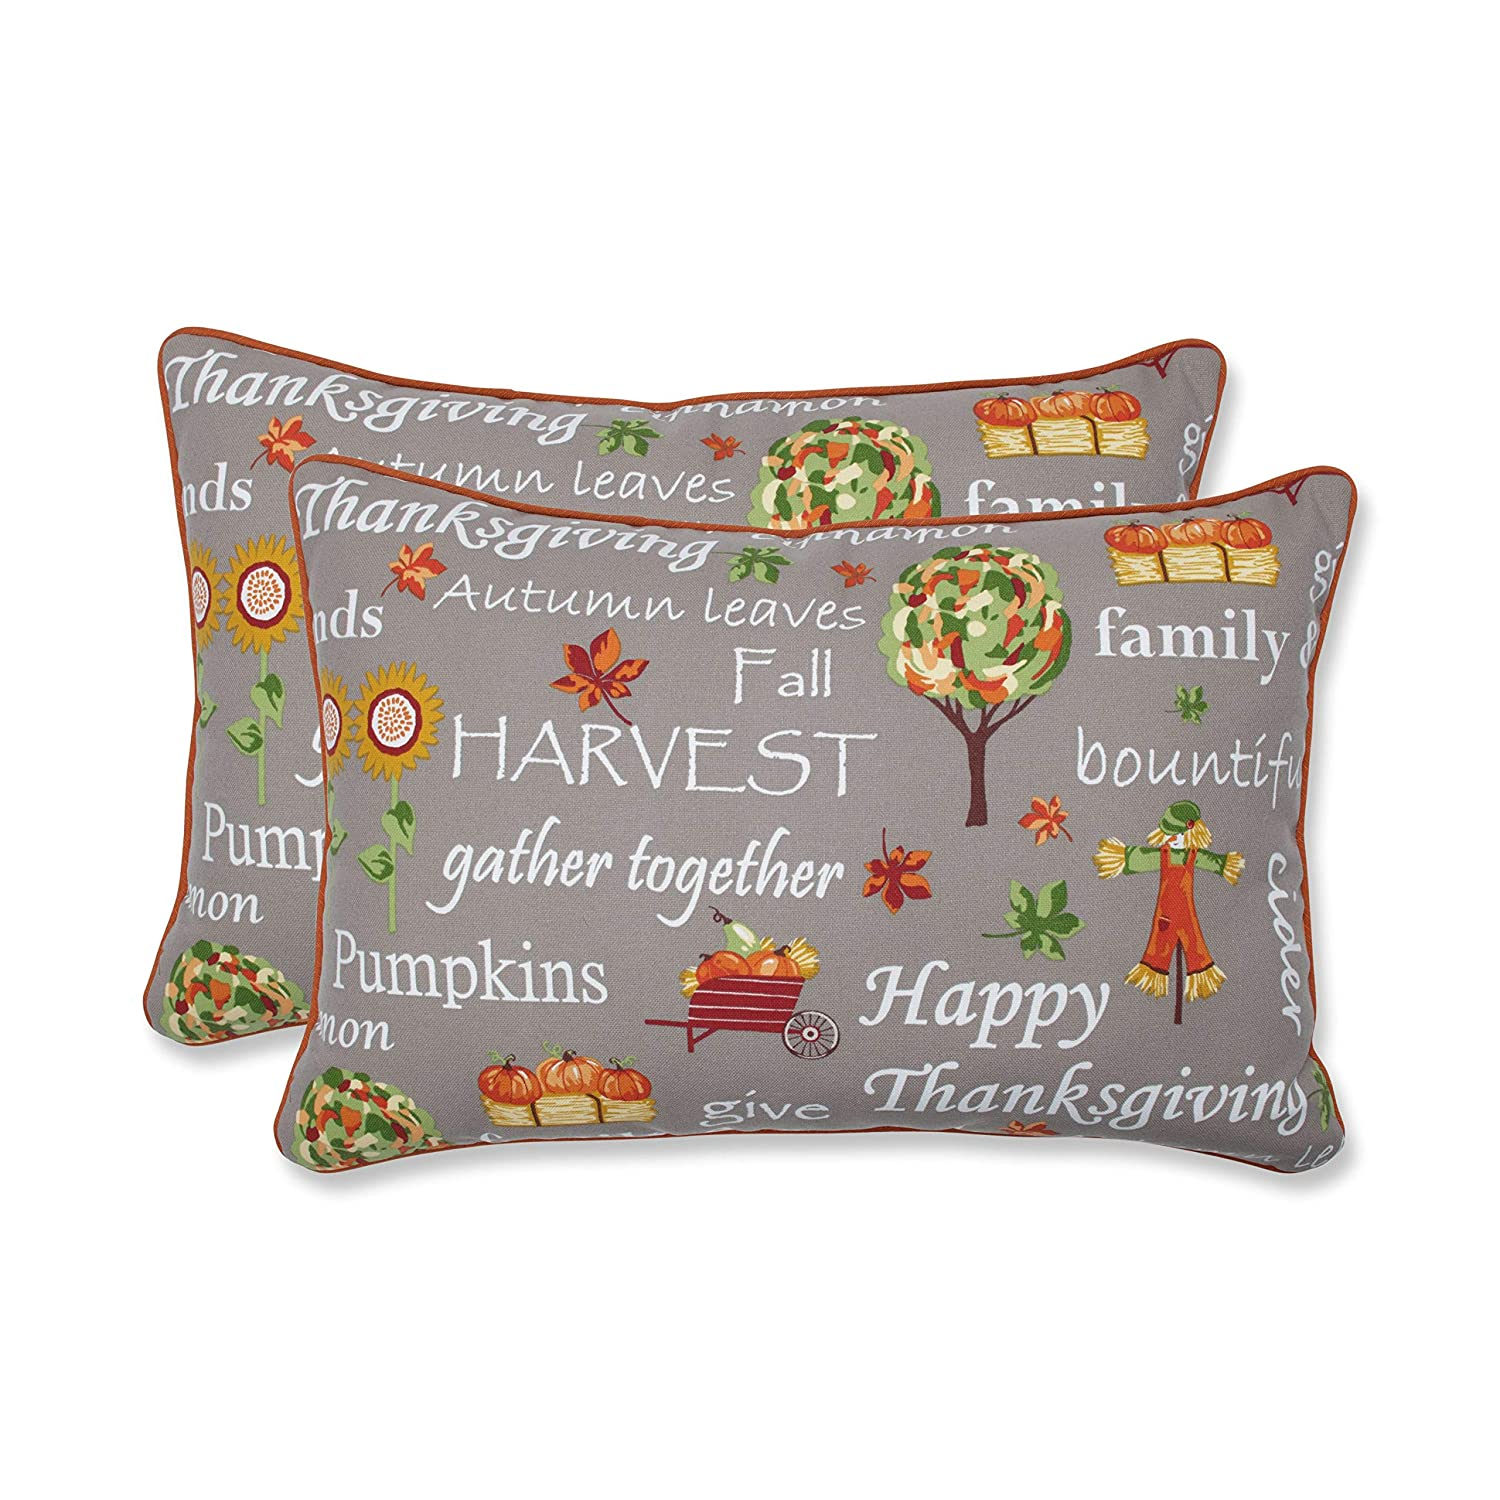 Pillow Perfect Autumn Harvest Haystack Indoor/Outdoor Oversized Lumbar Pillow, Set of 2 24.5' x 16.5' Multicolored